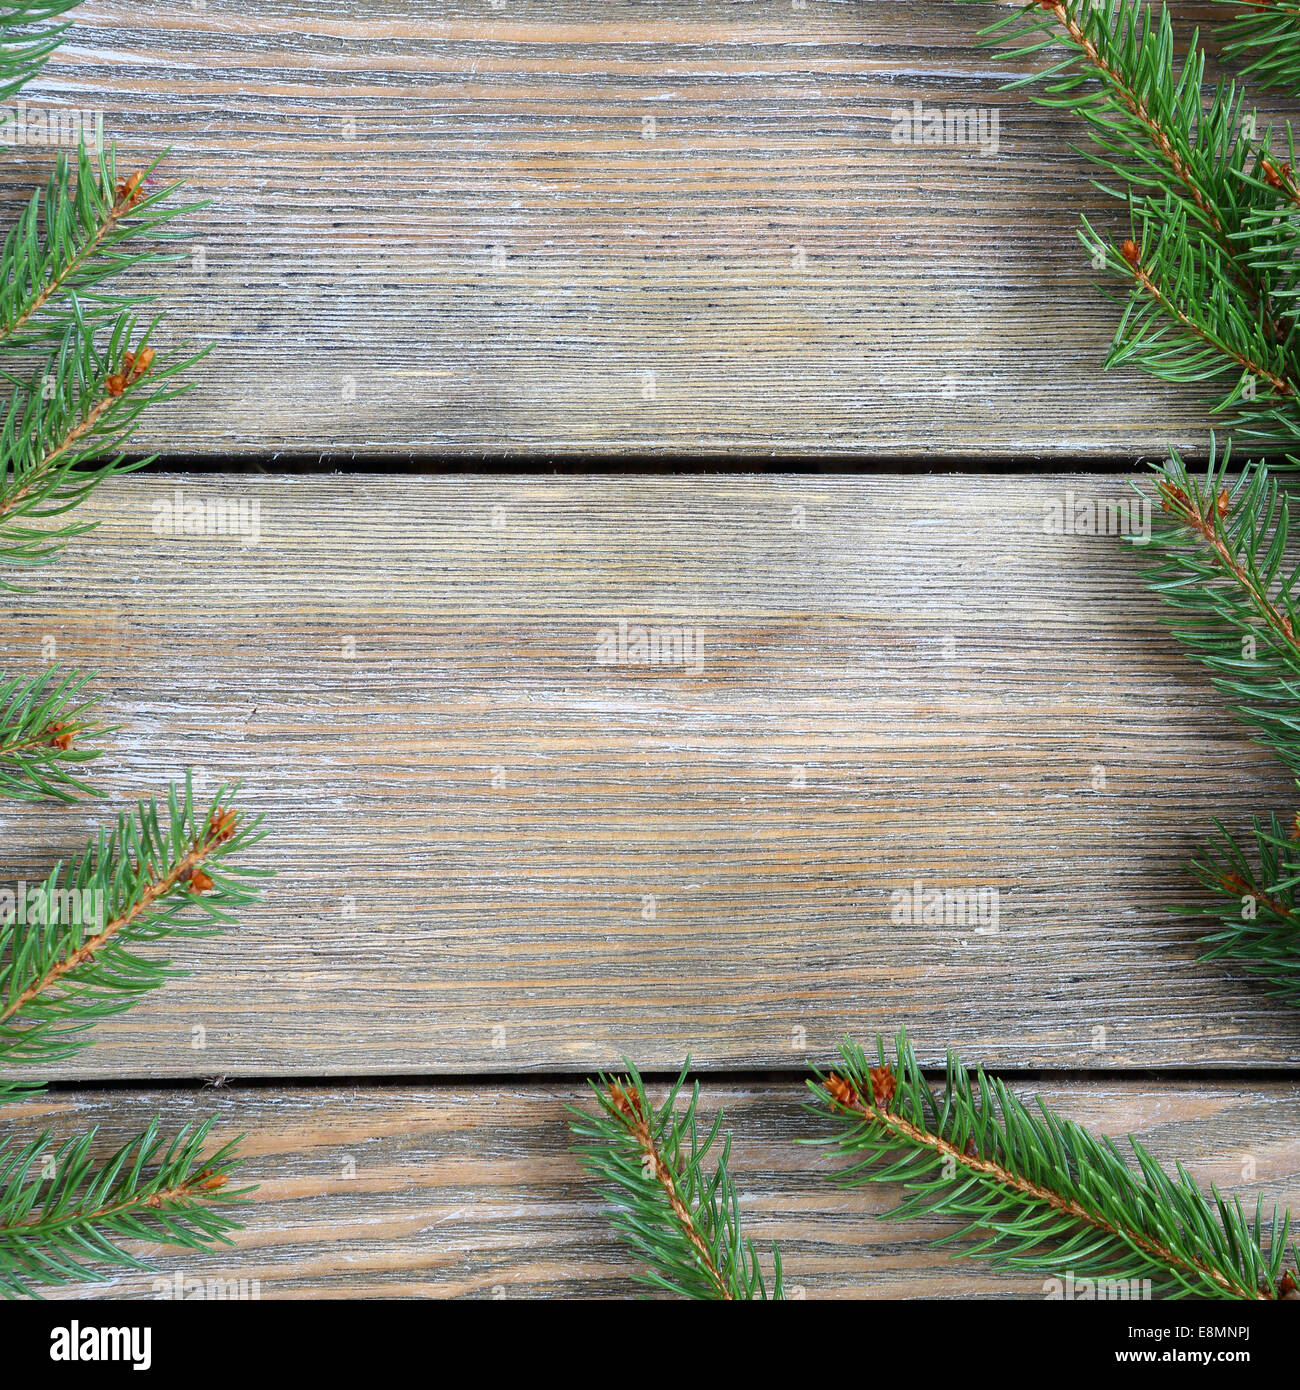 Christmas frame with pine branch on wooden boards, xmas background - Stock Image